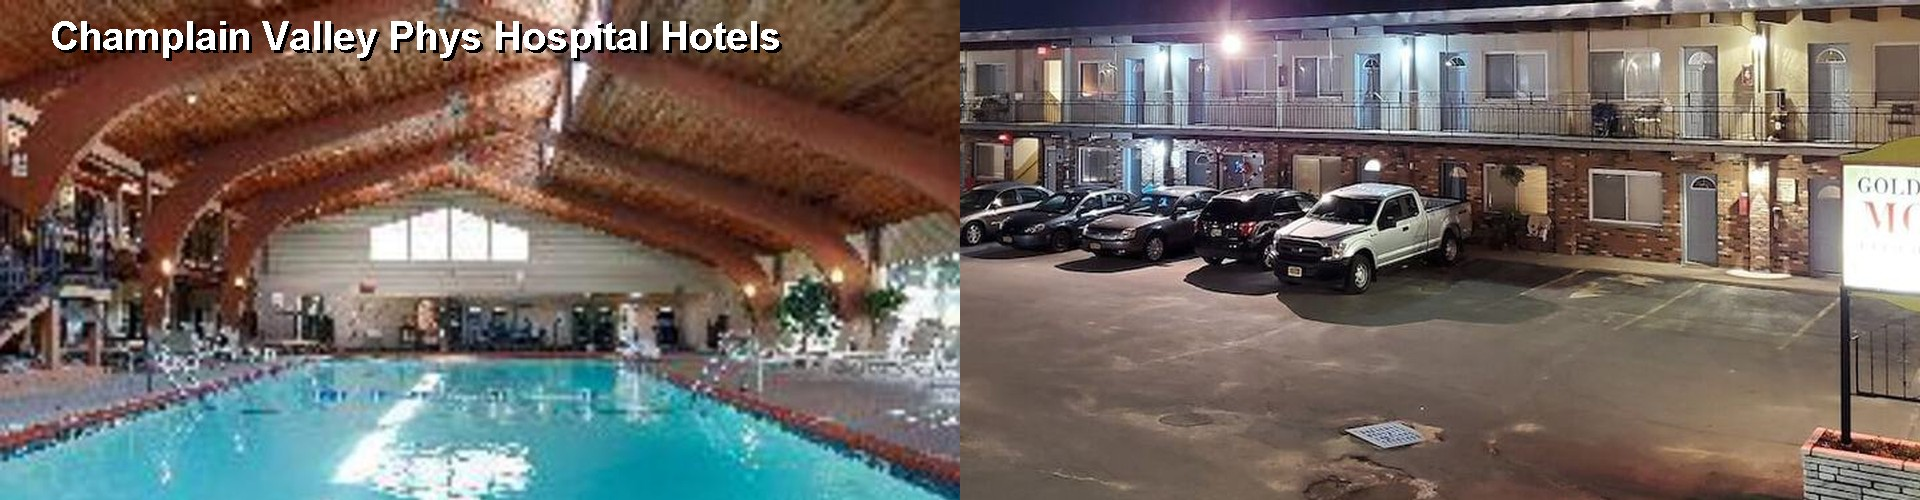 5 Best Hotels near Champlain Valley Phys Hospital